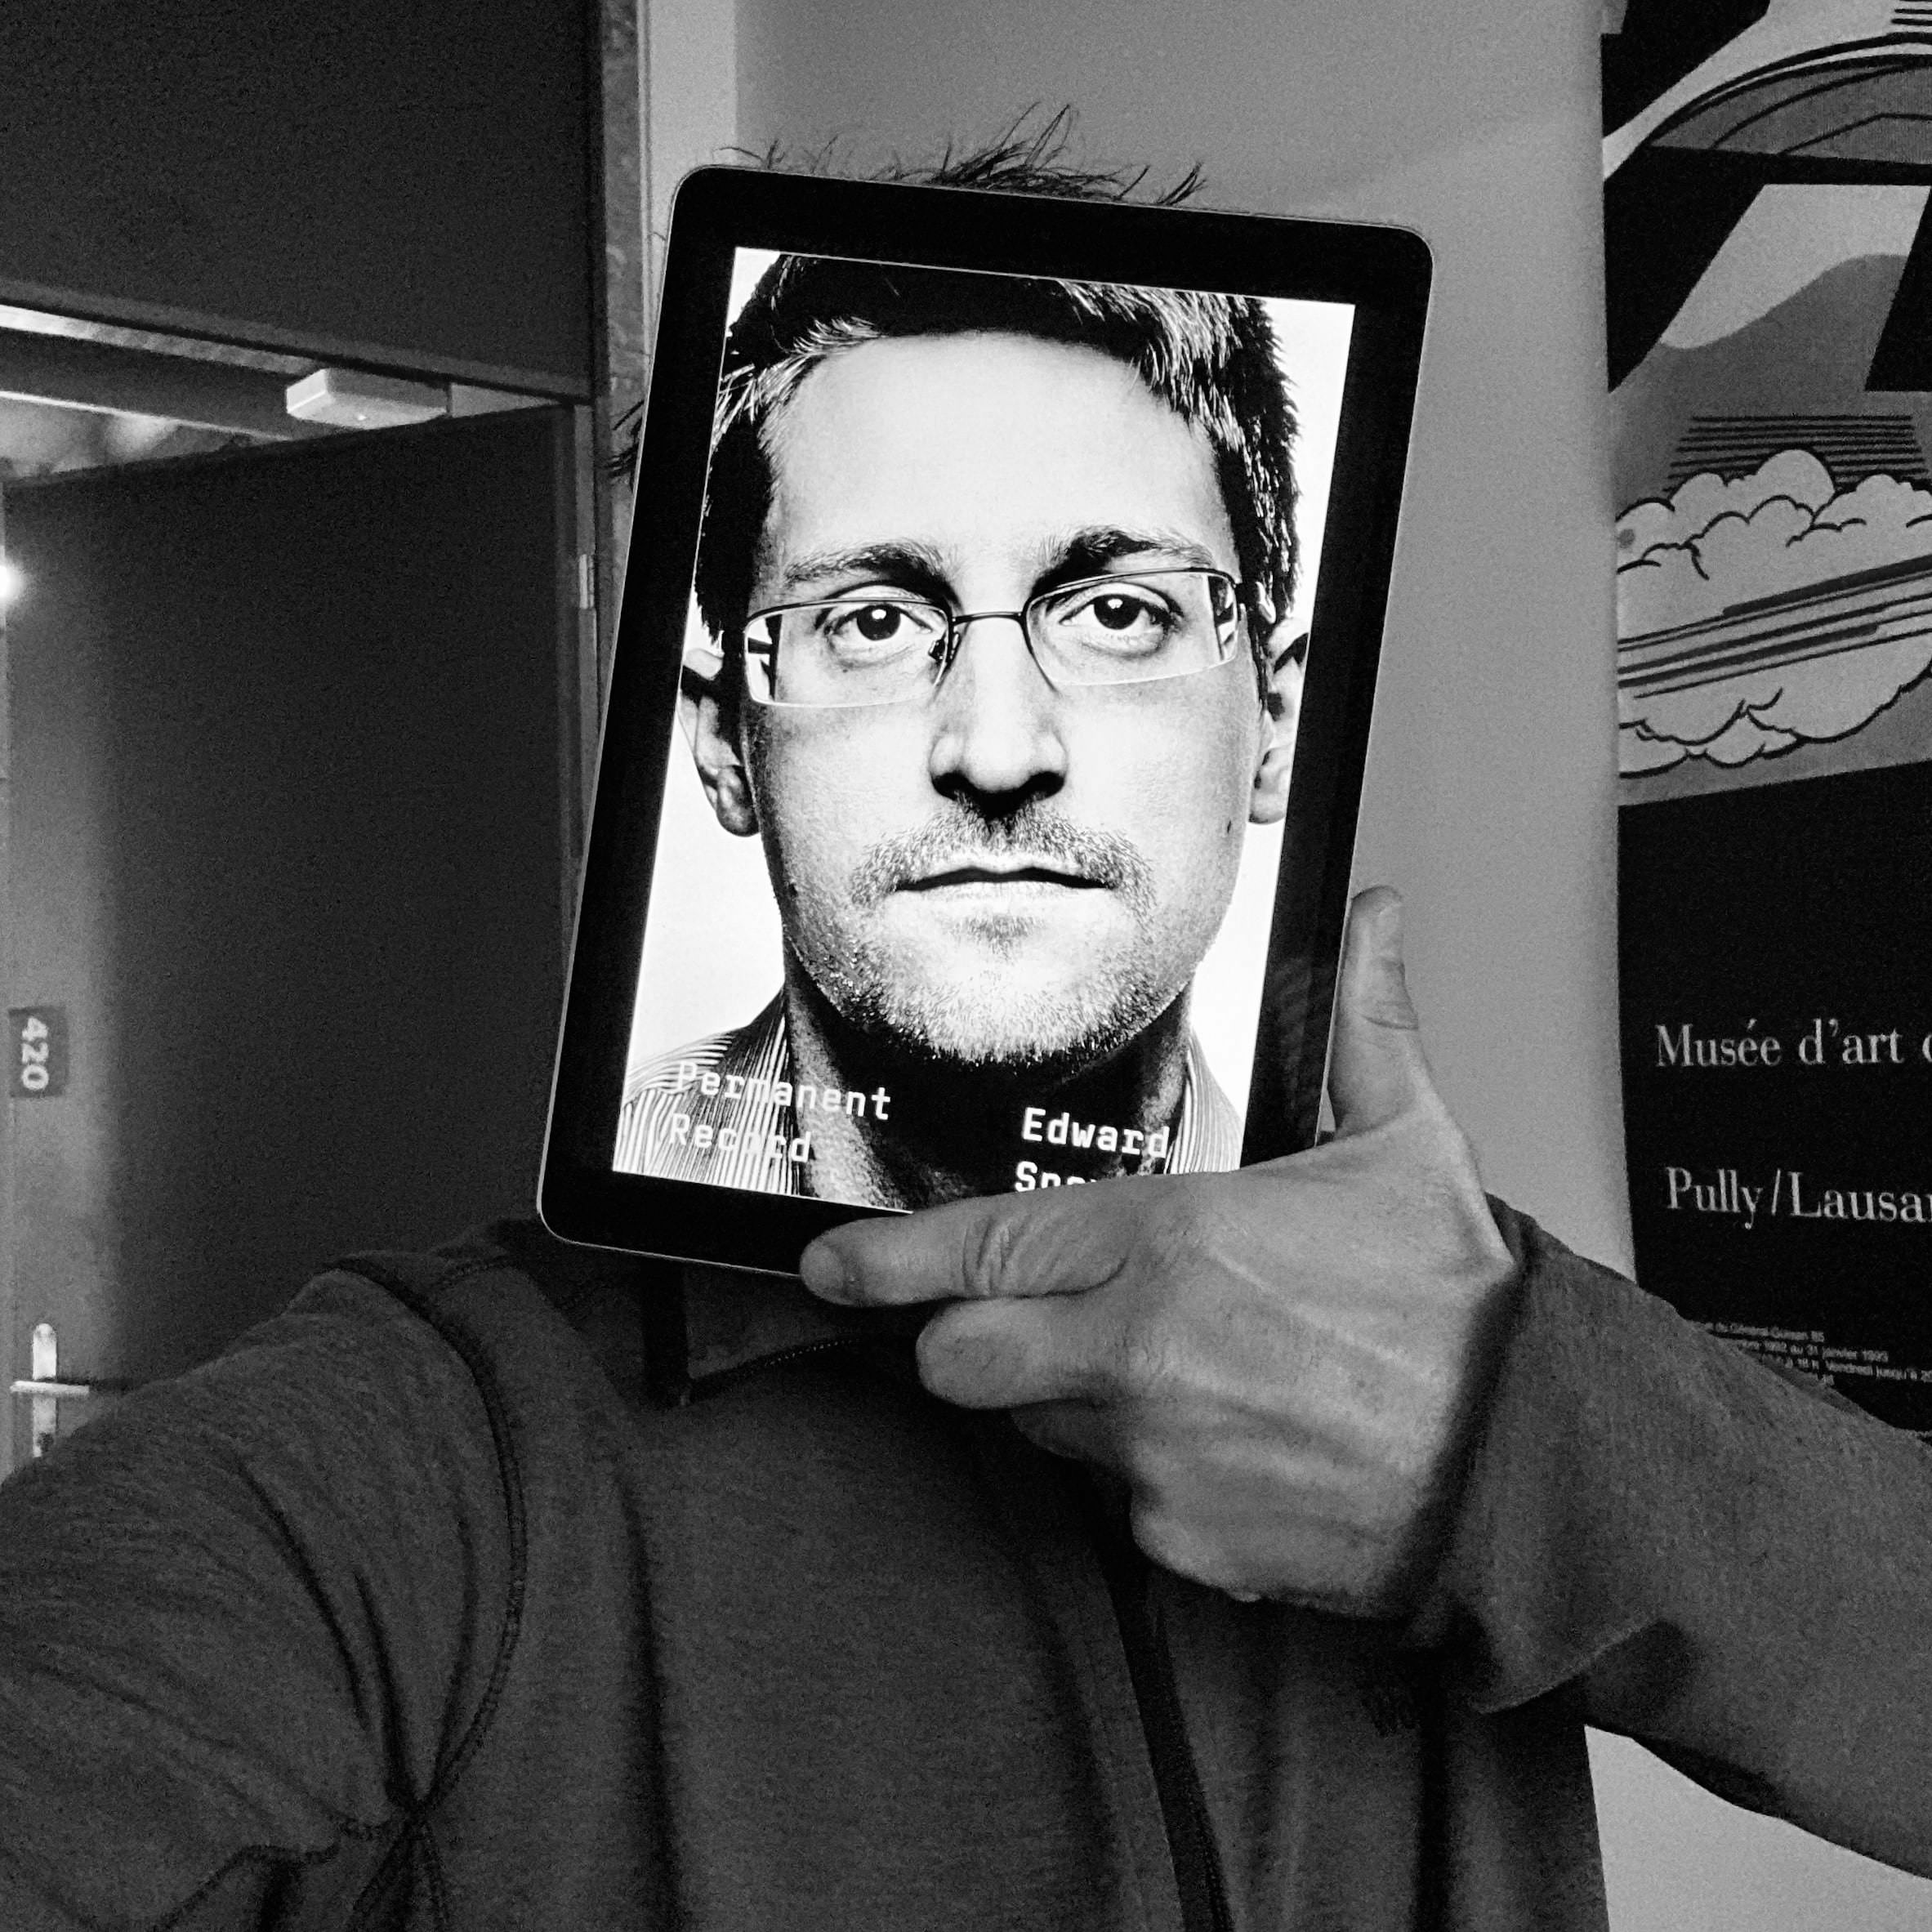 Self portrait with the portrait of Edward Snowden covering my face